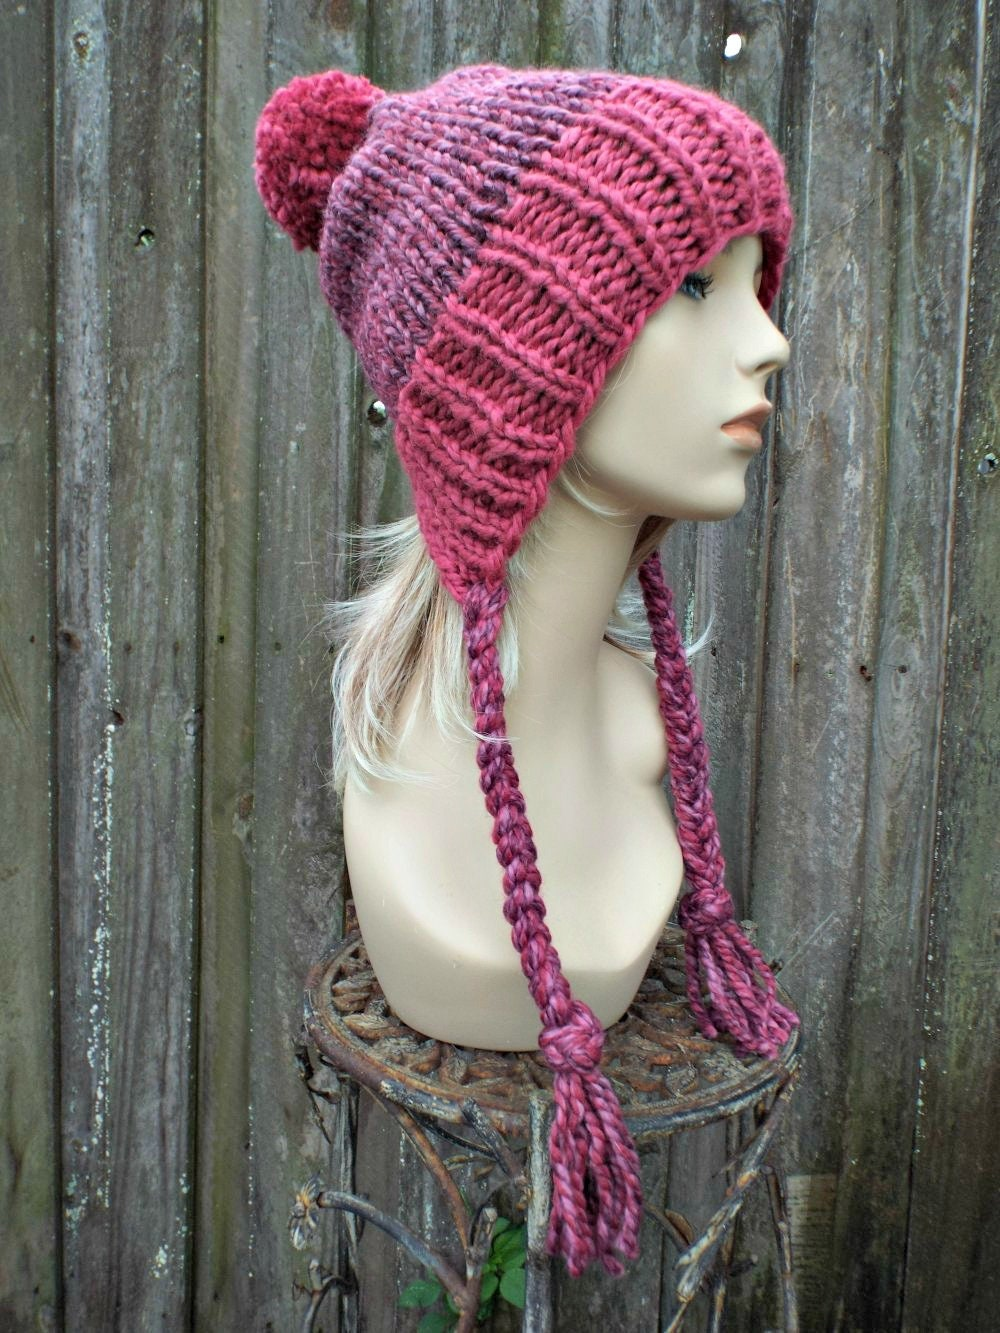 ecb3d707408 Chunky Knit Hat Womens Pink Pom Pom Hat - Slouchy Ear Flap Beanie With  Braided Ties Warm Winter Hat - Charlotte - READY TO SHIP